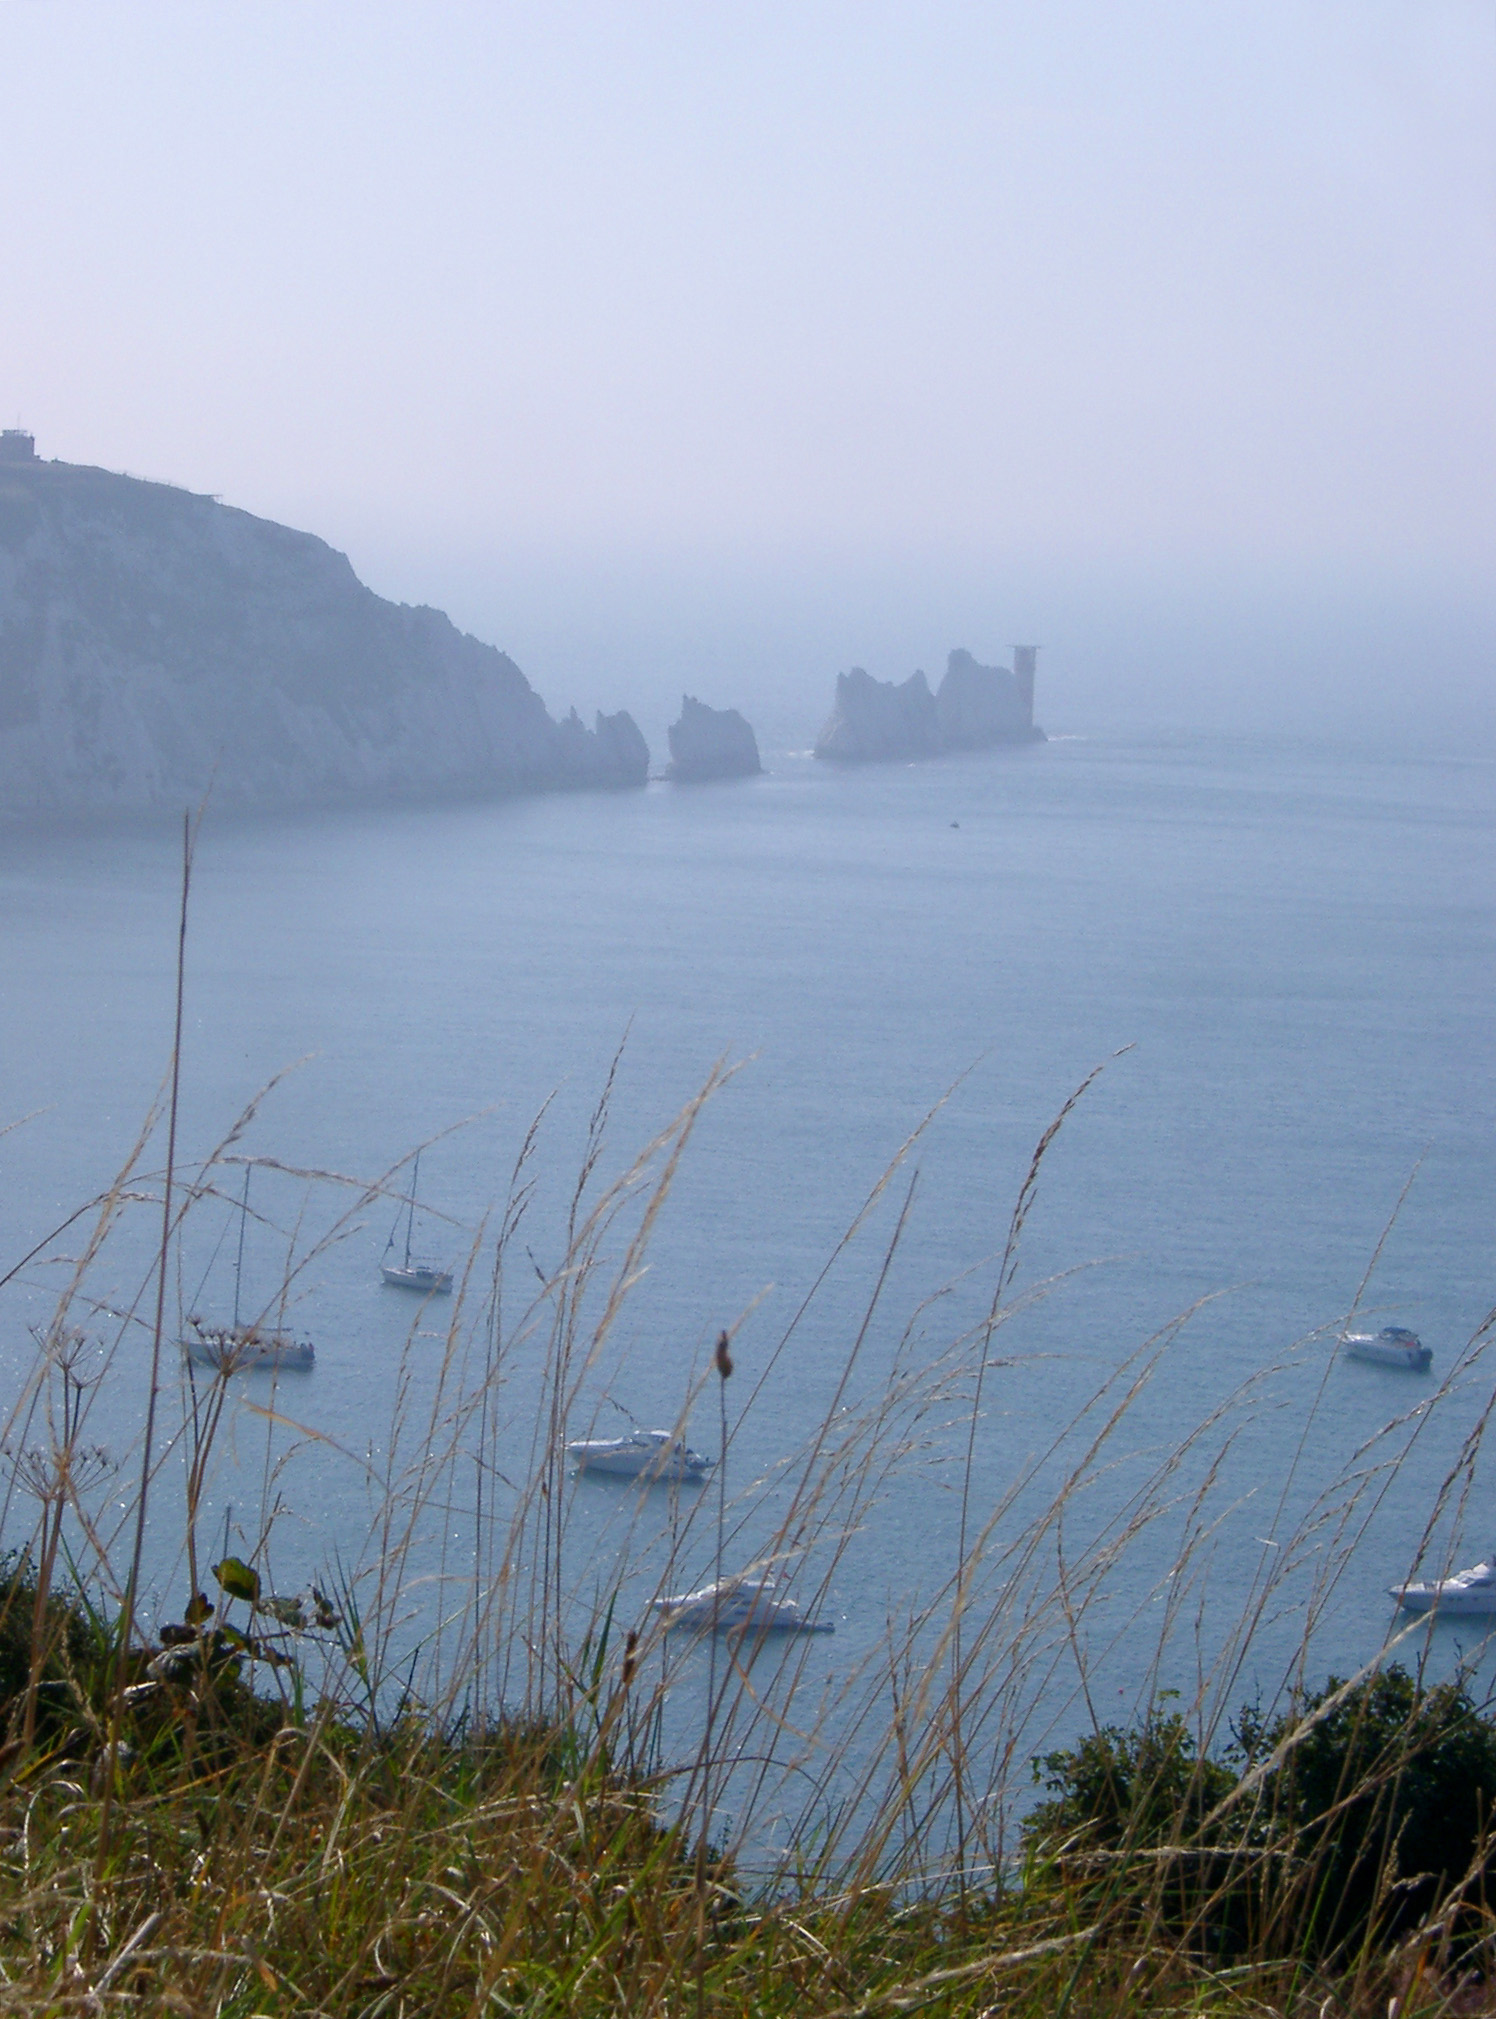 View of the Needles, Isle of Wight, a row of eroded chalk stacks rising out of the ocean